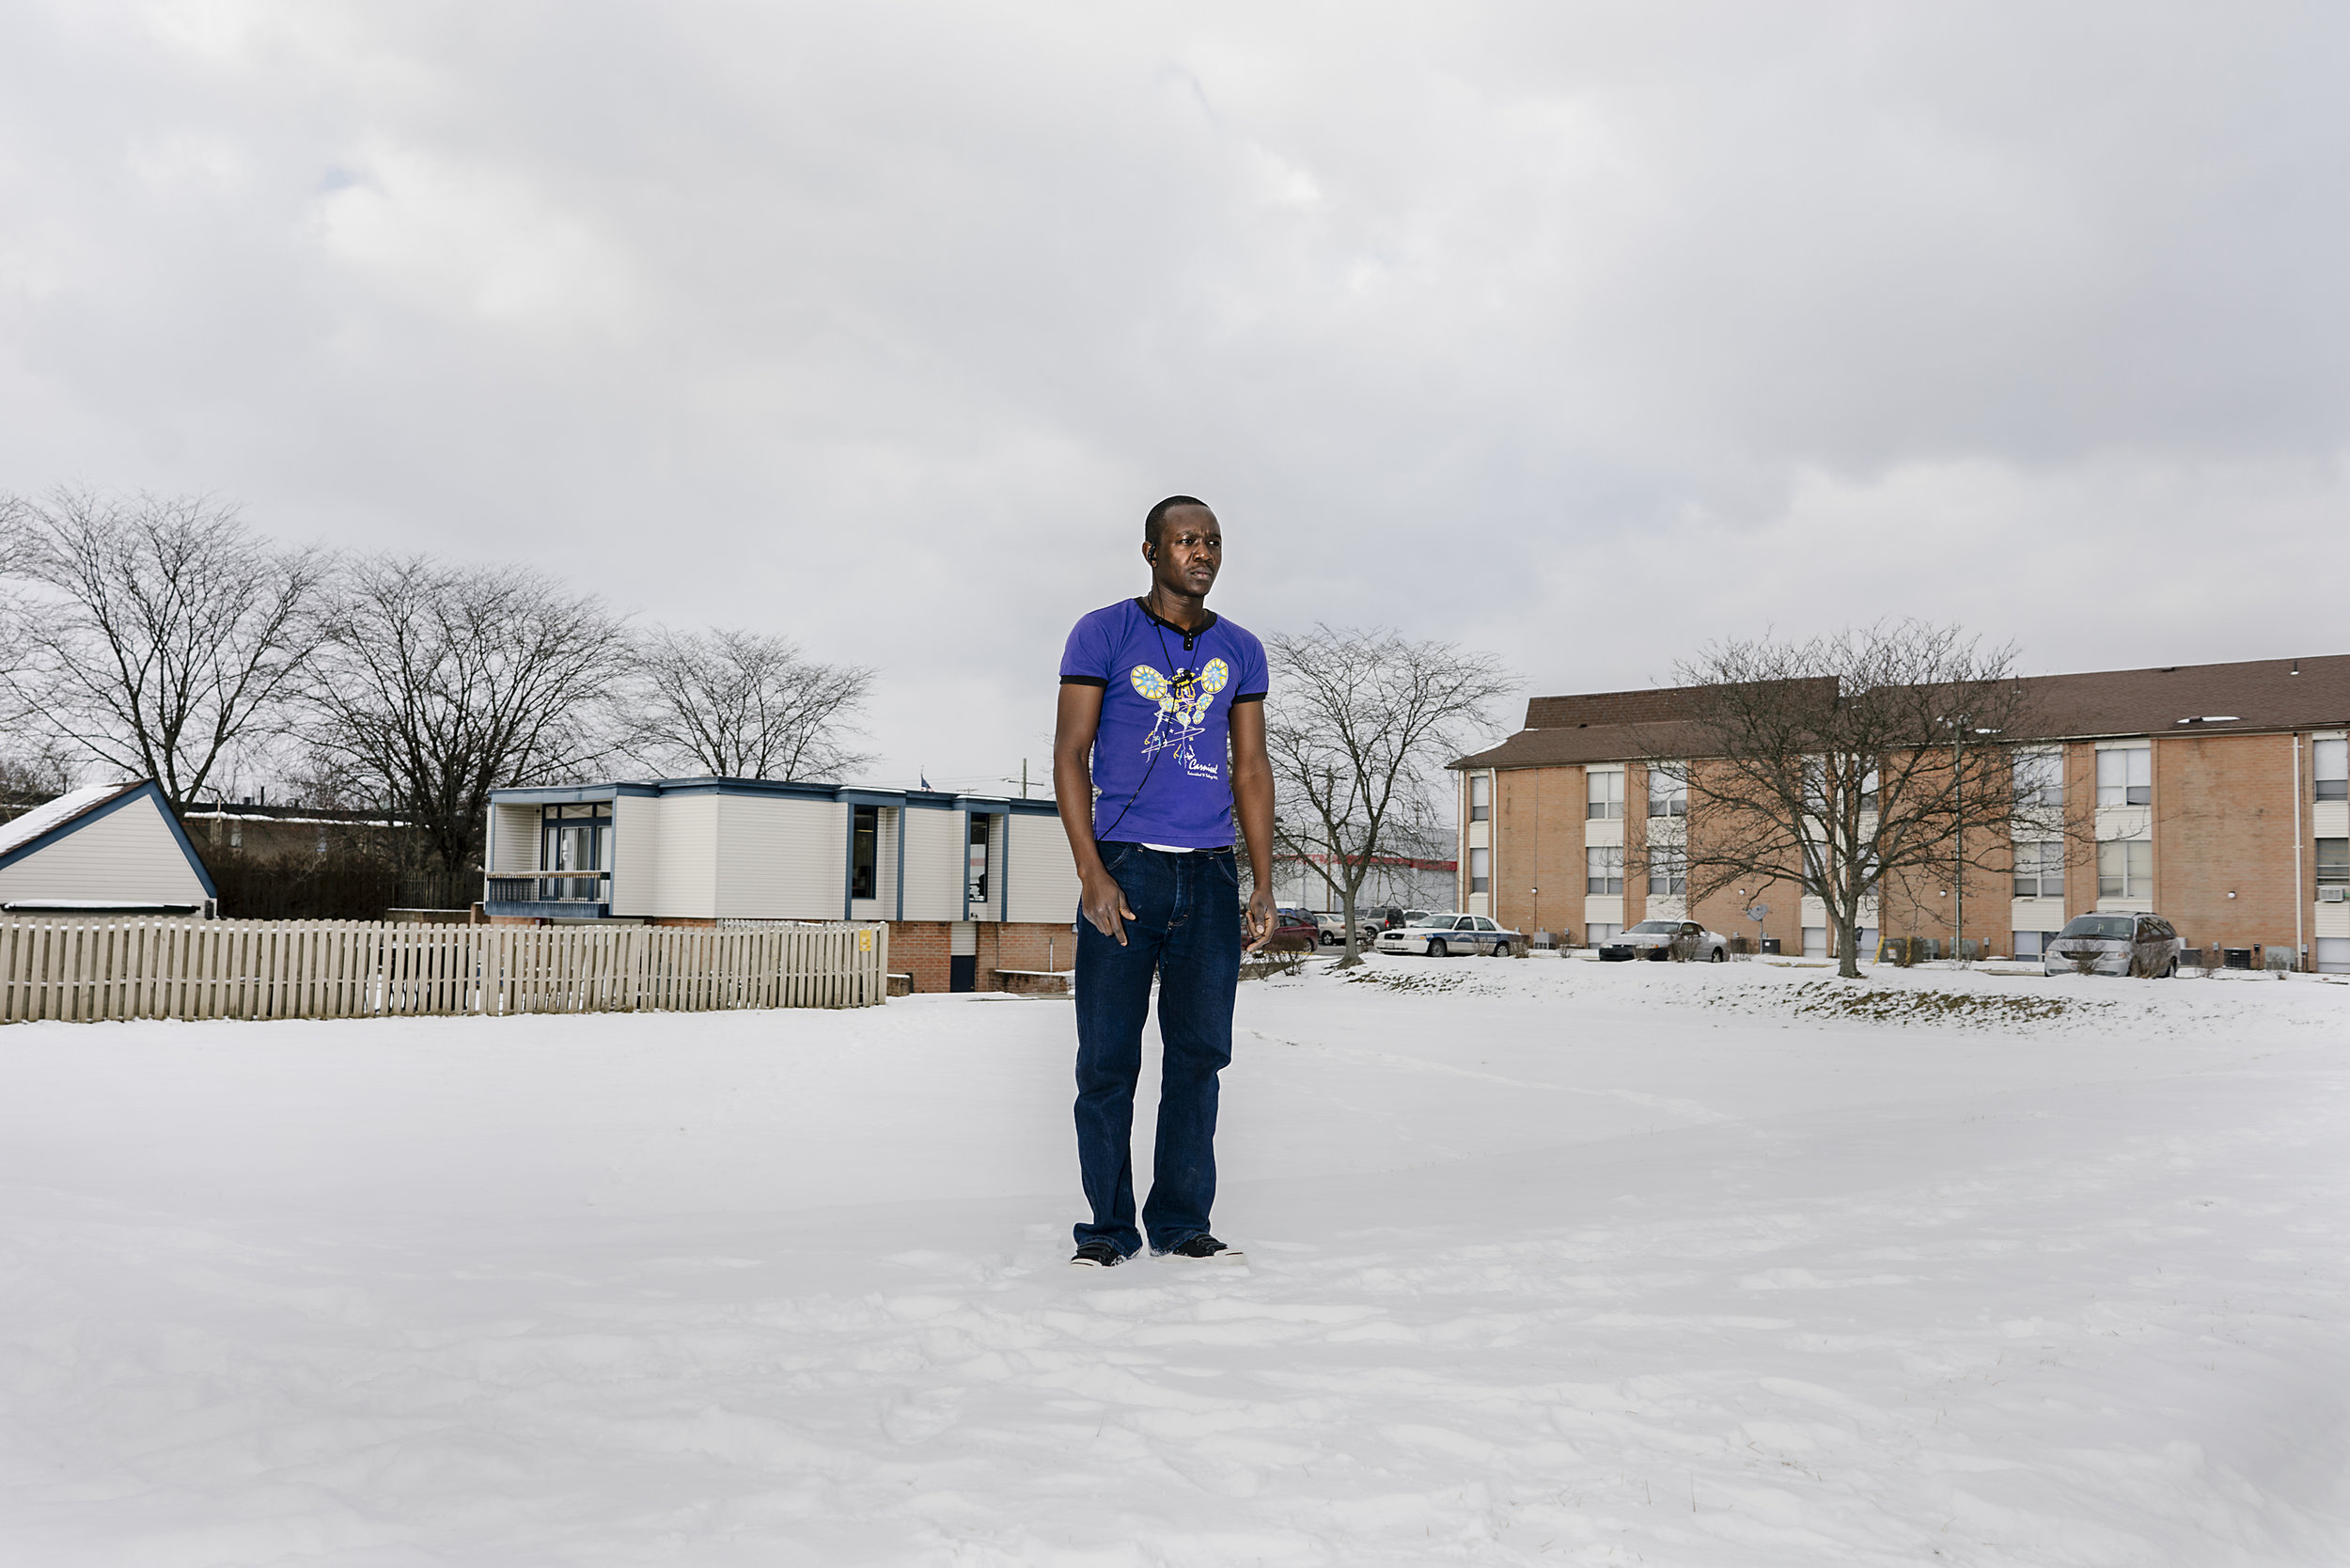 Bonny poses for a portrait near his home in Ohio. After more than a year of living in the squalid Kakuma refugee camp, he was resettled in the United States. He works the night shift in a refrigerated warehouse, so told me he's no longer bothered by the cold.